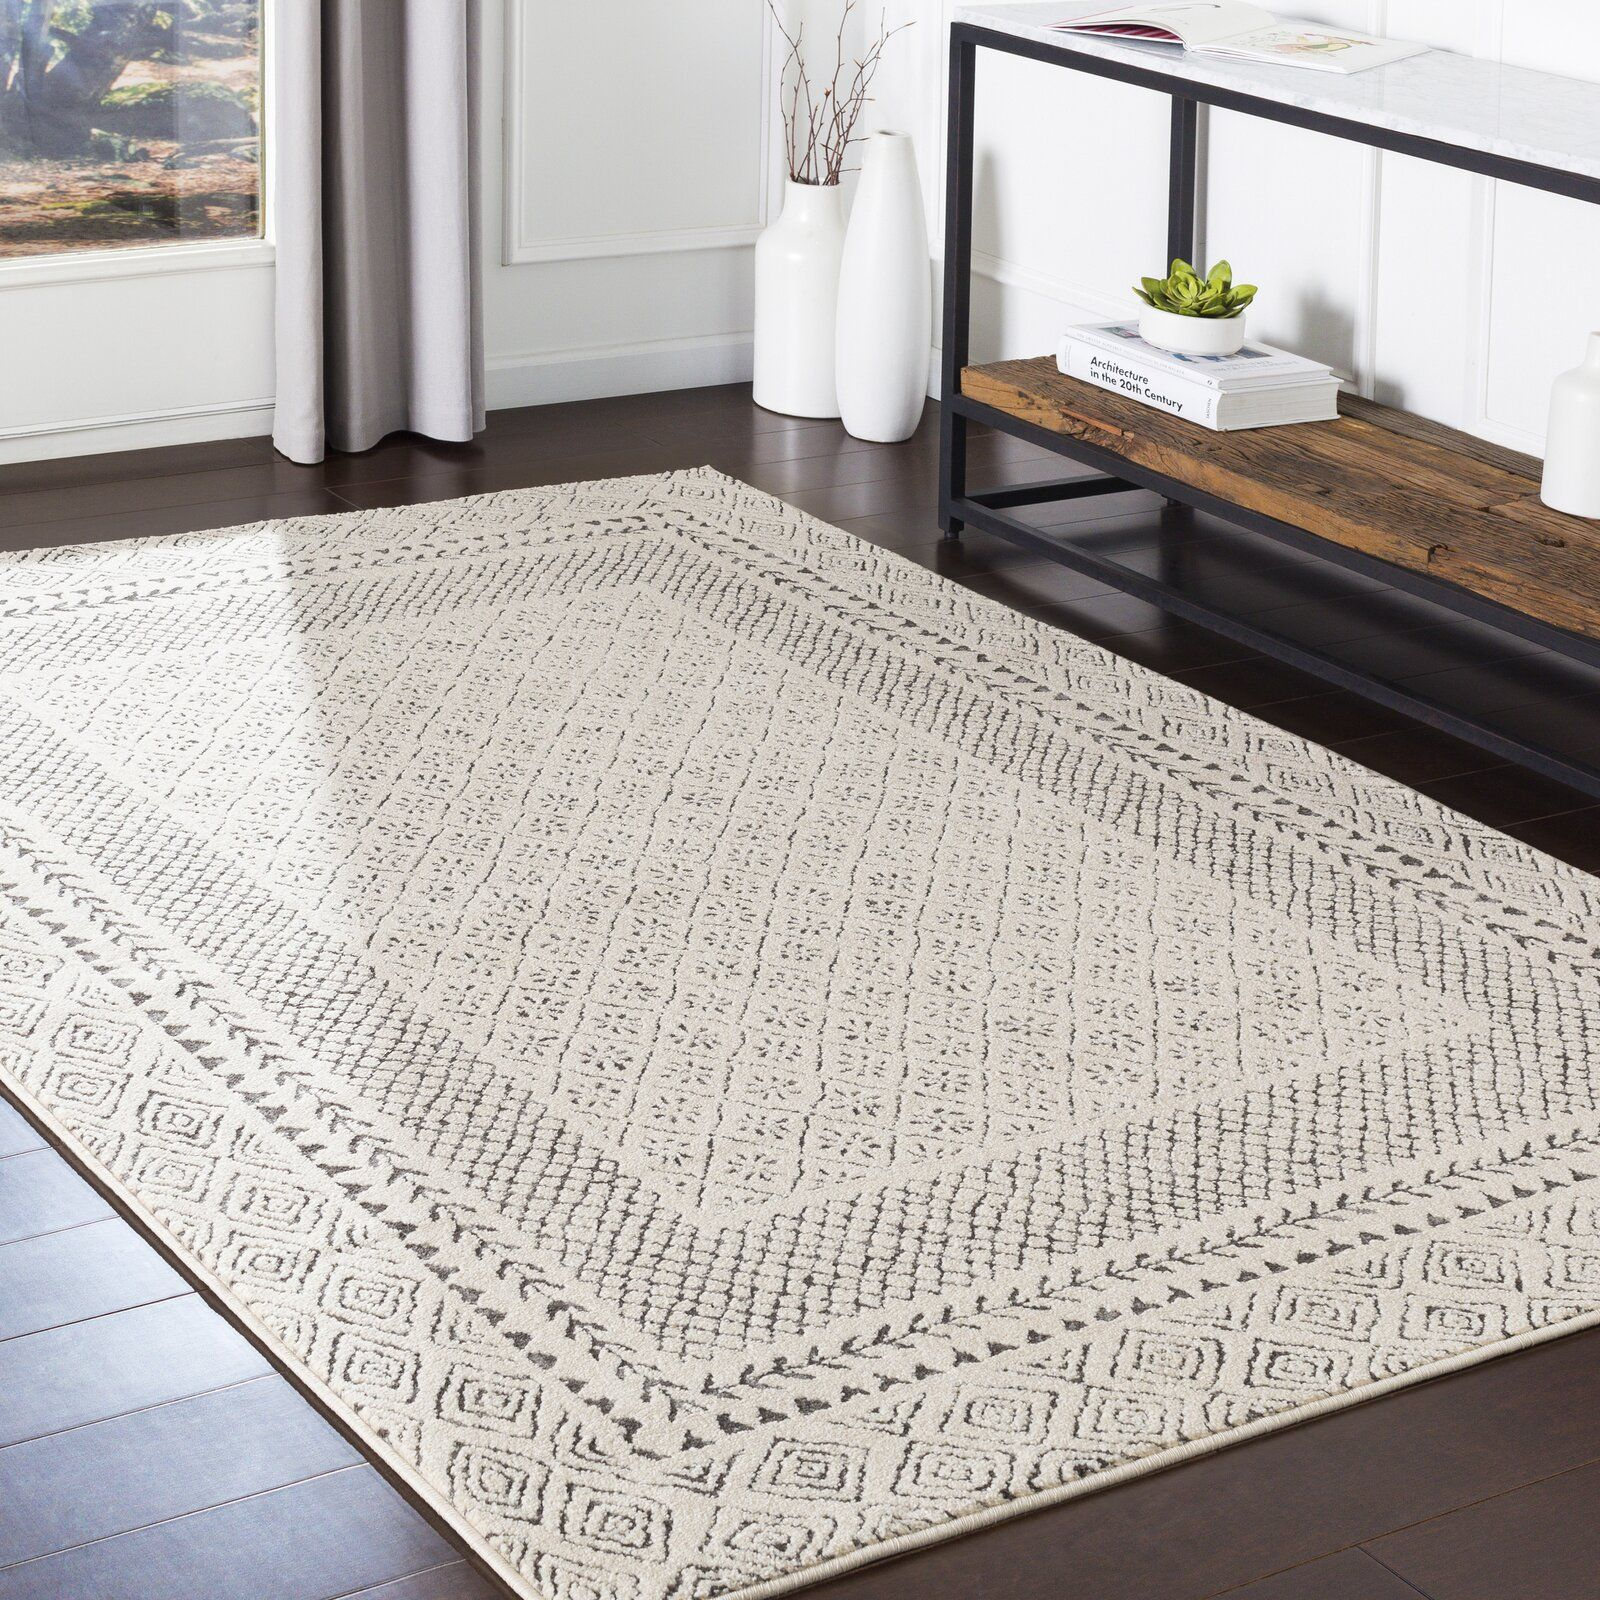 Calvo Gray Beige Charcoal Area Rug Farmhouse Area Rugs Rugs In